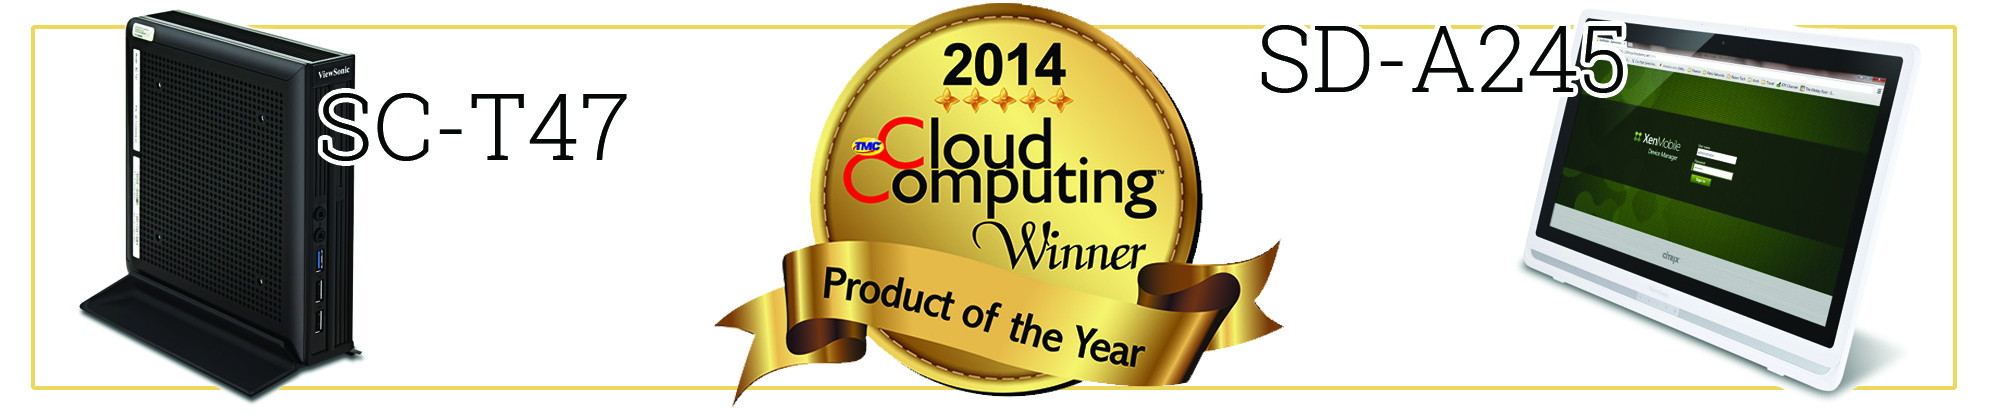 ViewSonic Receives 2014 Cloud Computing Product of the Year Award